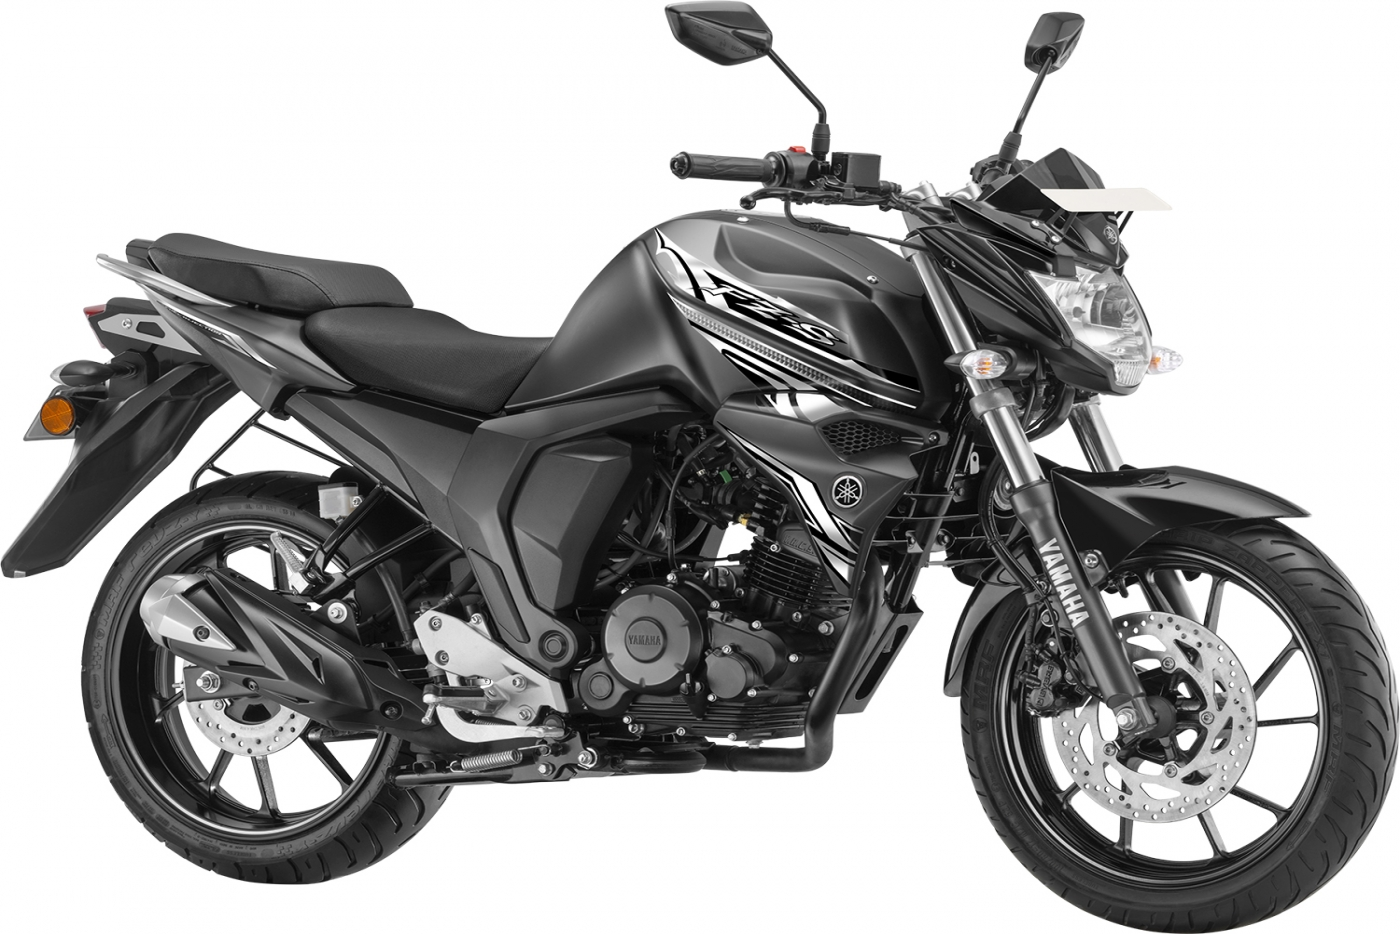 yamaha-fzs-fi-rear-disc-darknight-colour-variant.jpg